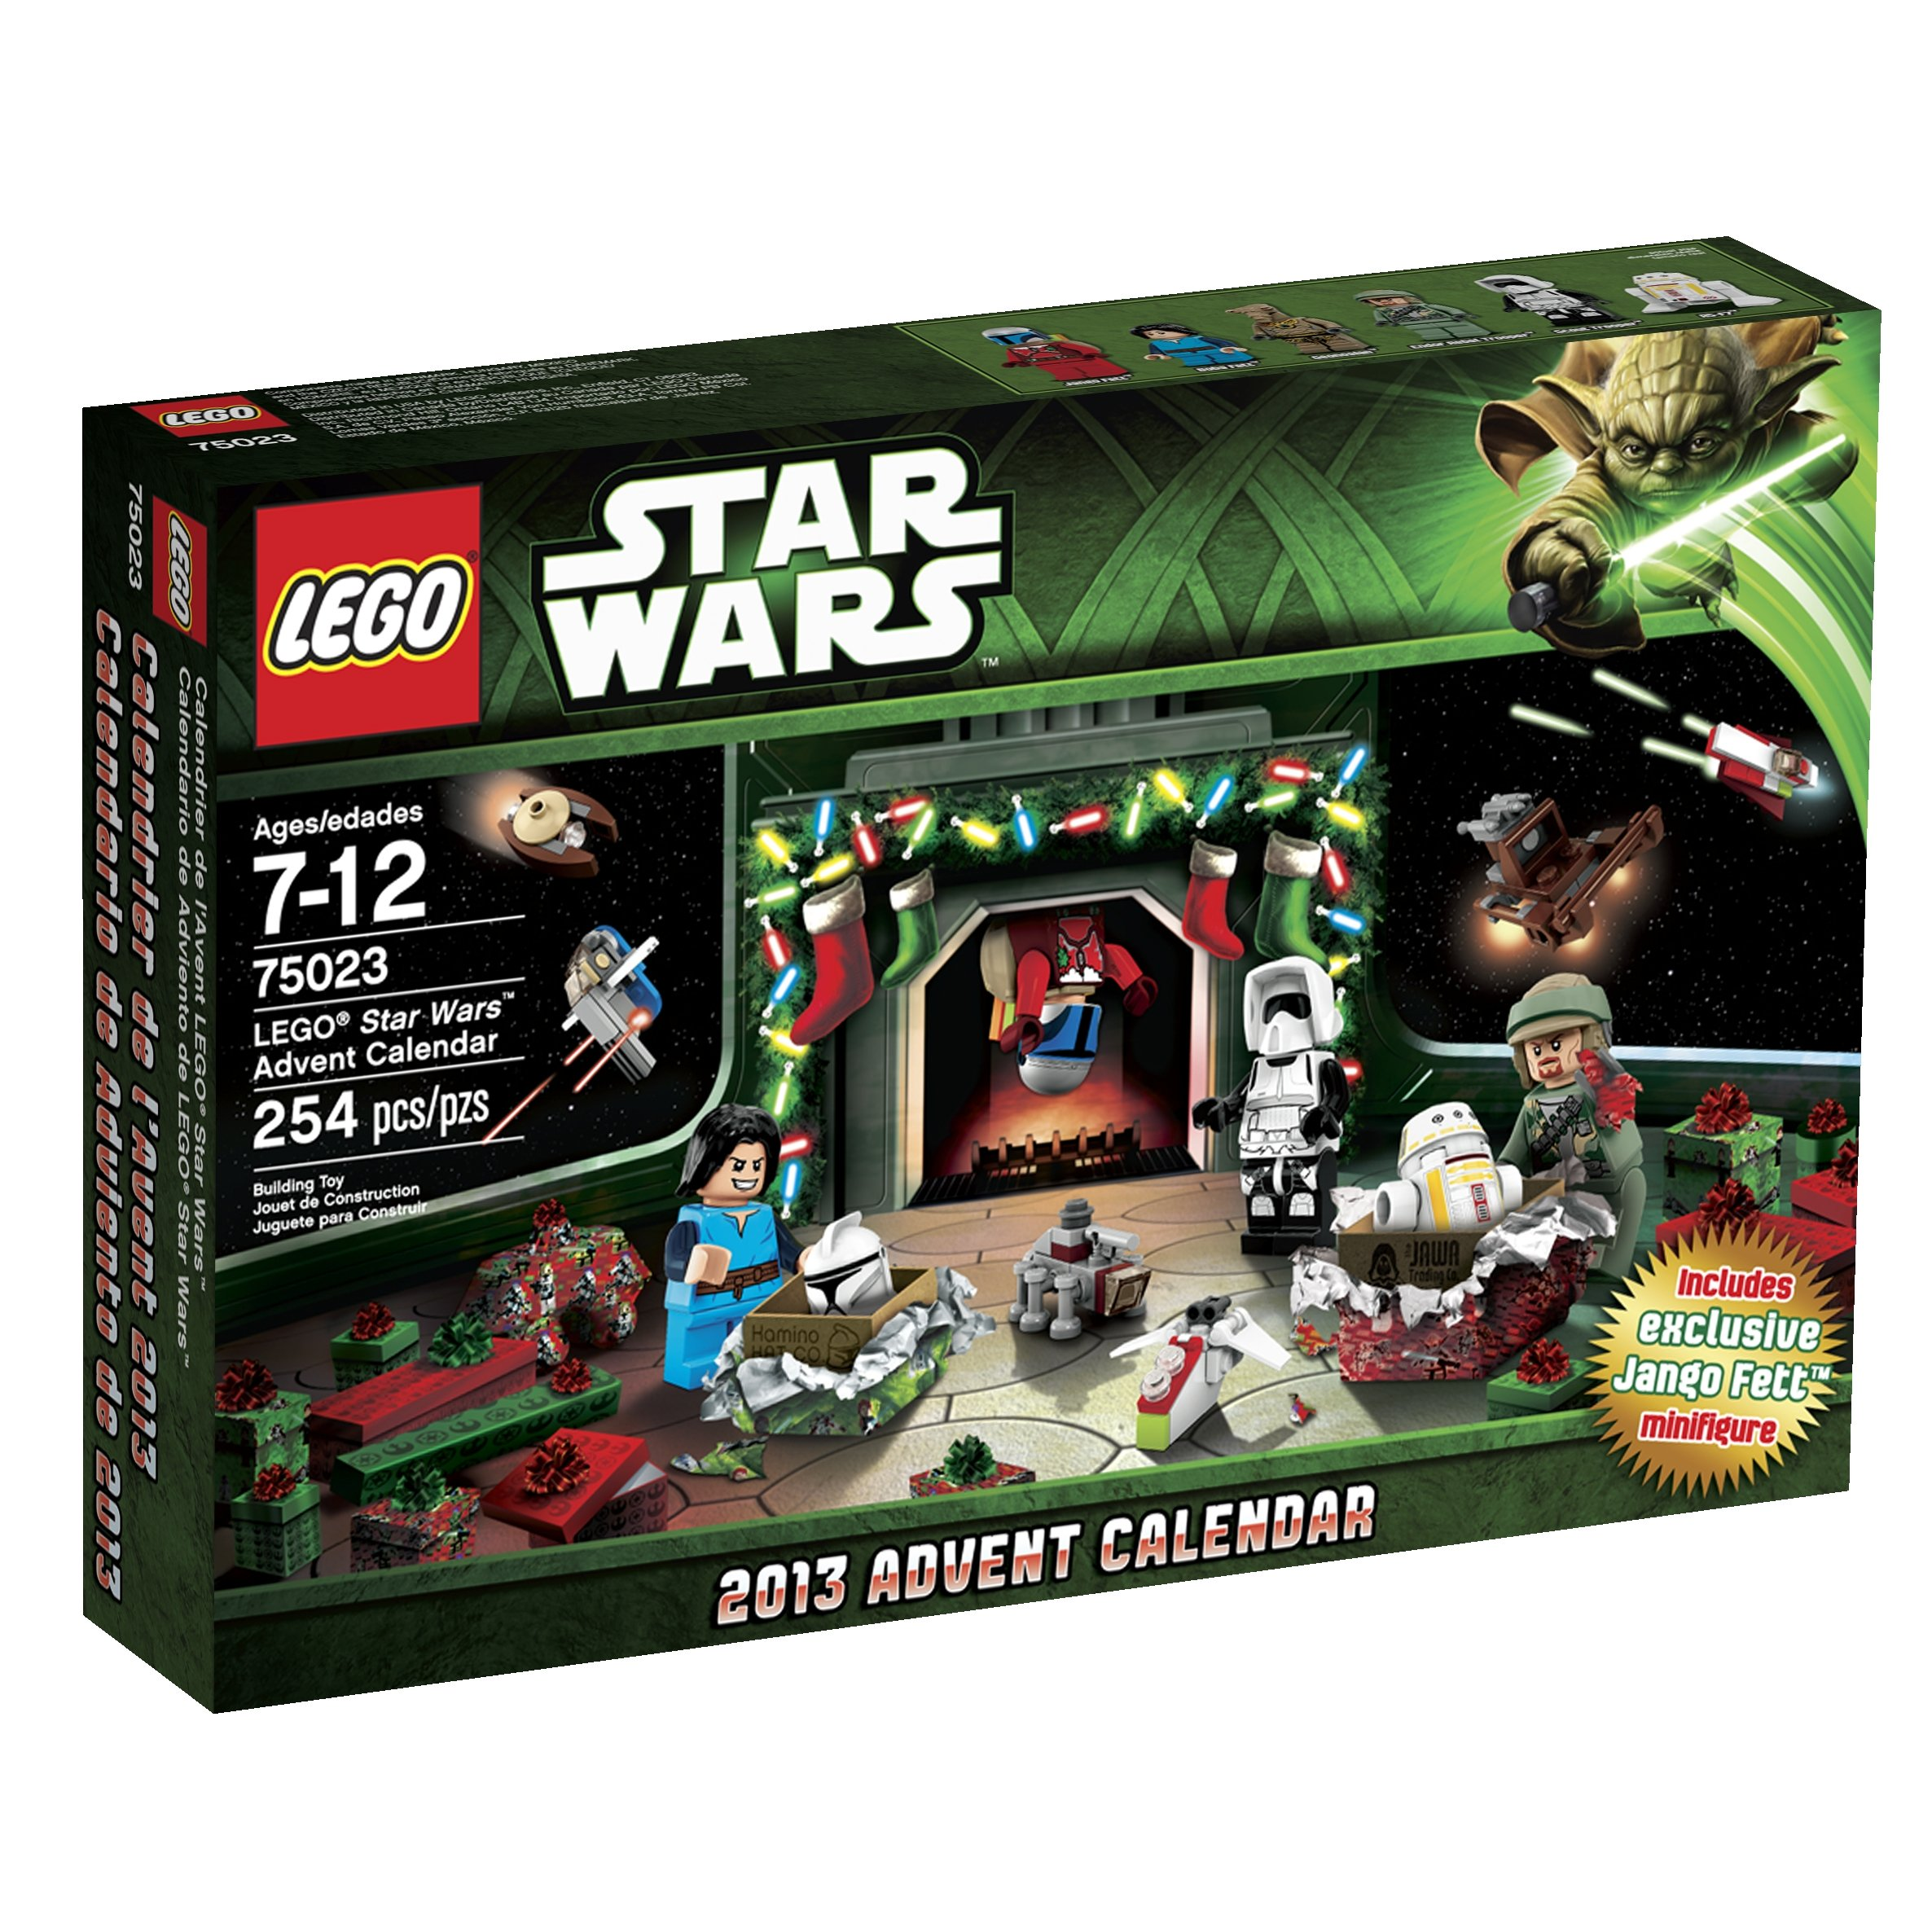 LEGO Star Wars 75023 Advent Calendar (Discontinued by manufacturer)